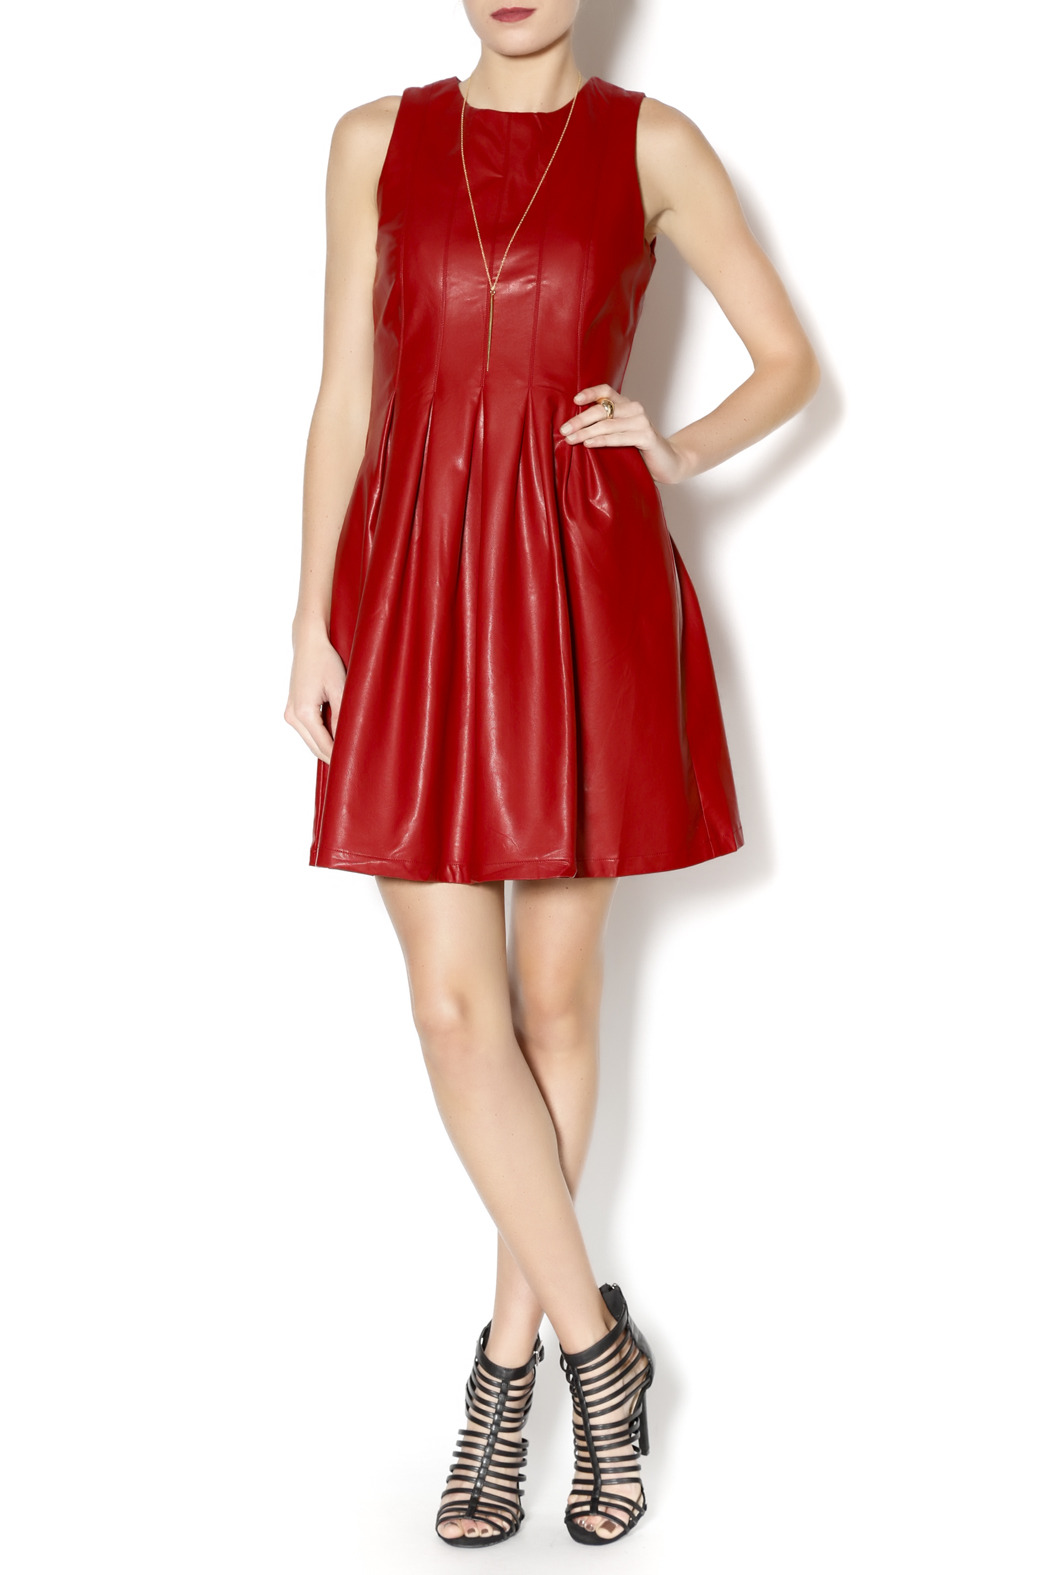 e87b93bee6c Lucy Paris Red Pleather Dress from Chicago by Blush Boutique ...